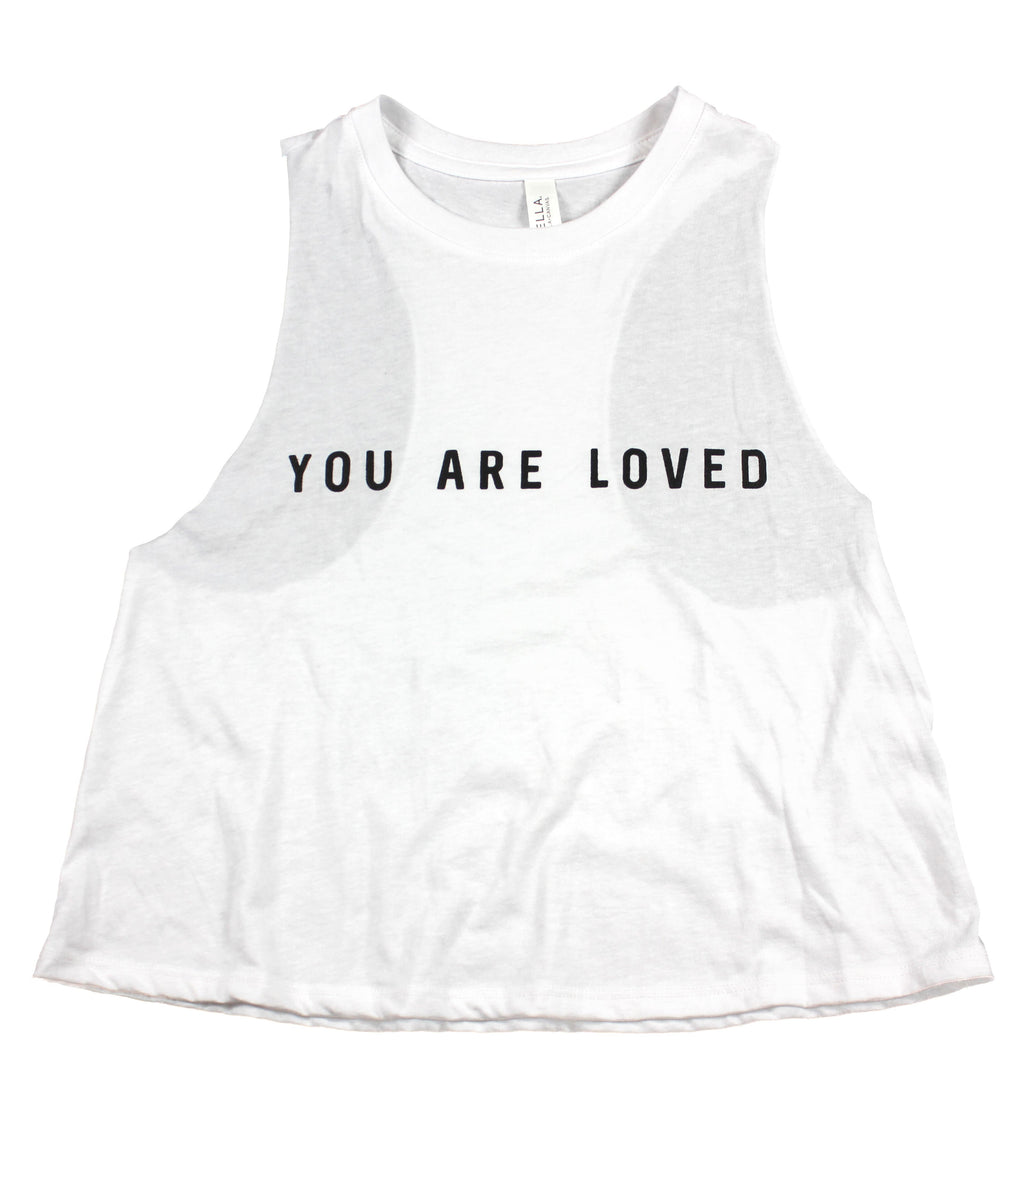 YOU ARE LOVED WHITE WOMEN'S RACERBACK CROPPED TANK